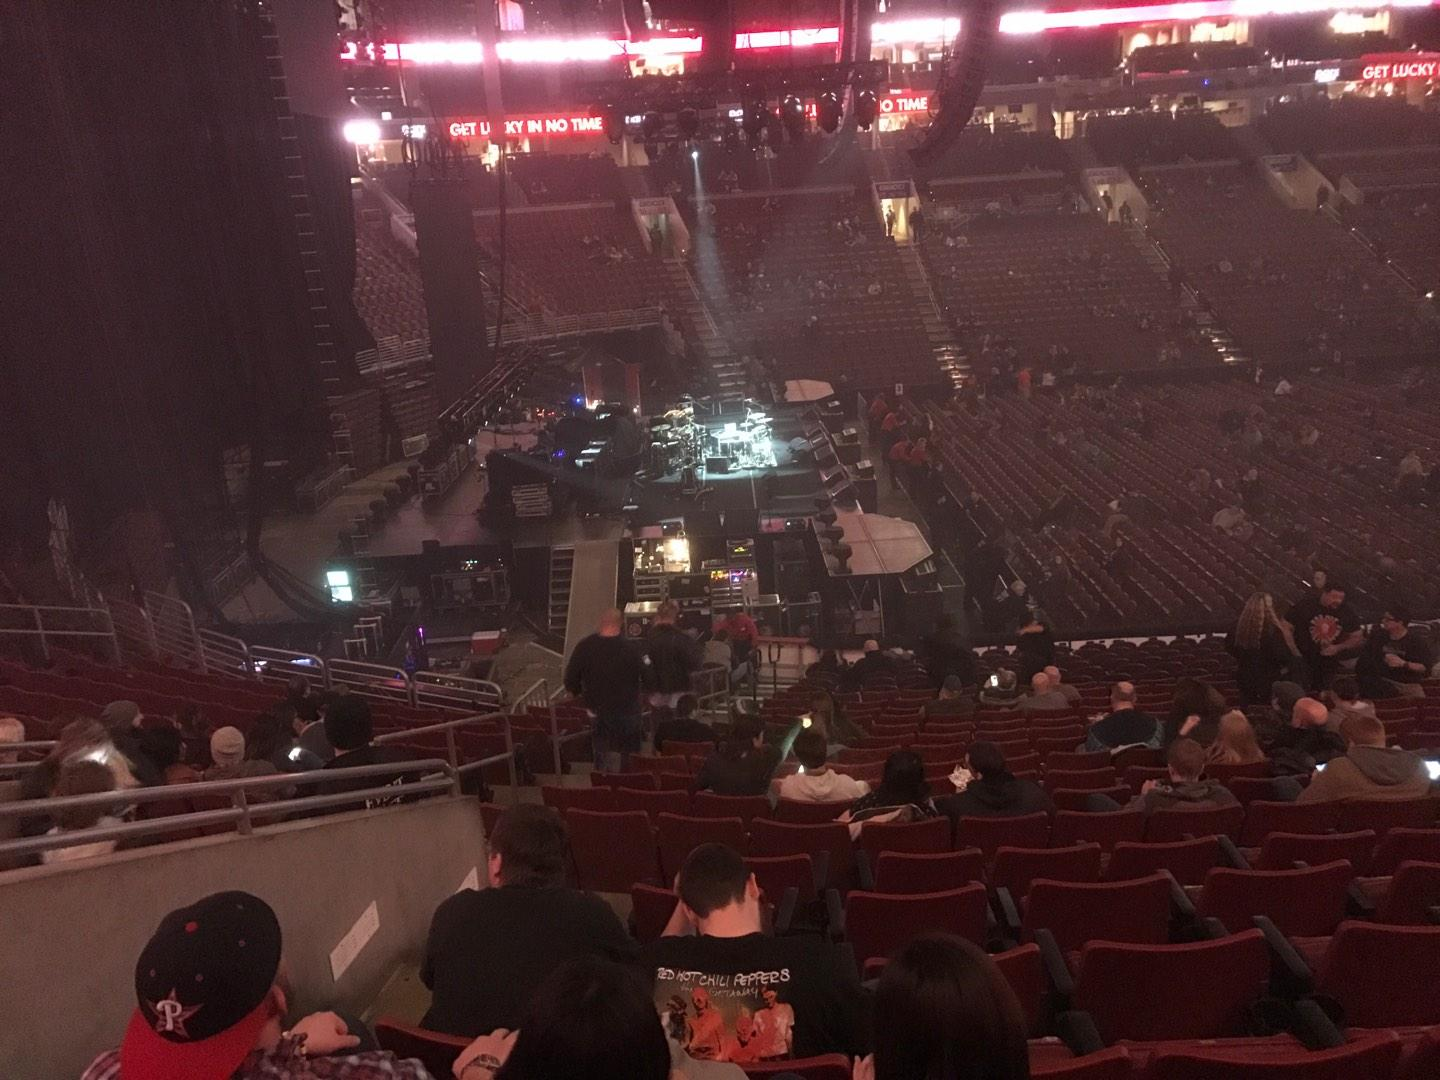 Wells Fargo Center Section CB23 Row 1 Seat 5